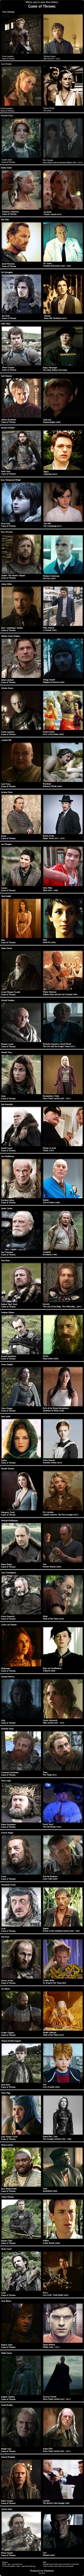 Infographie : Les acteurs de Game of Thrones